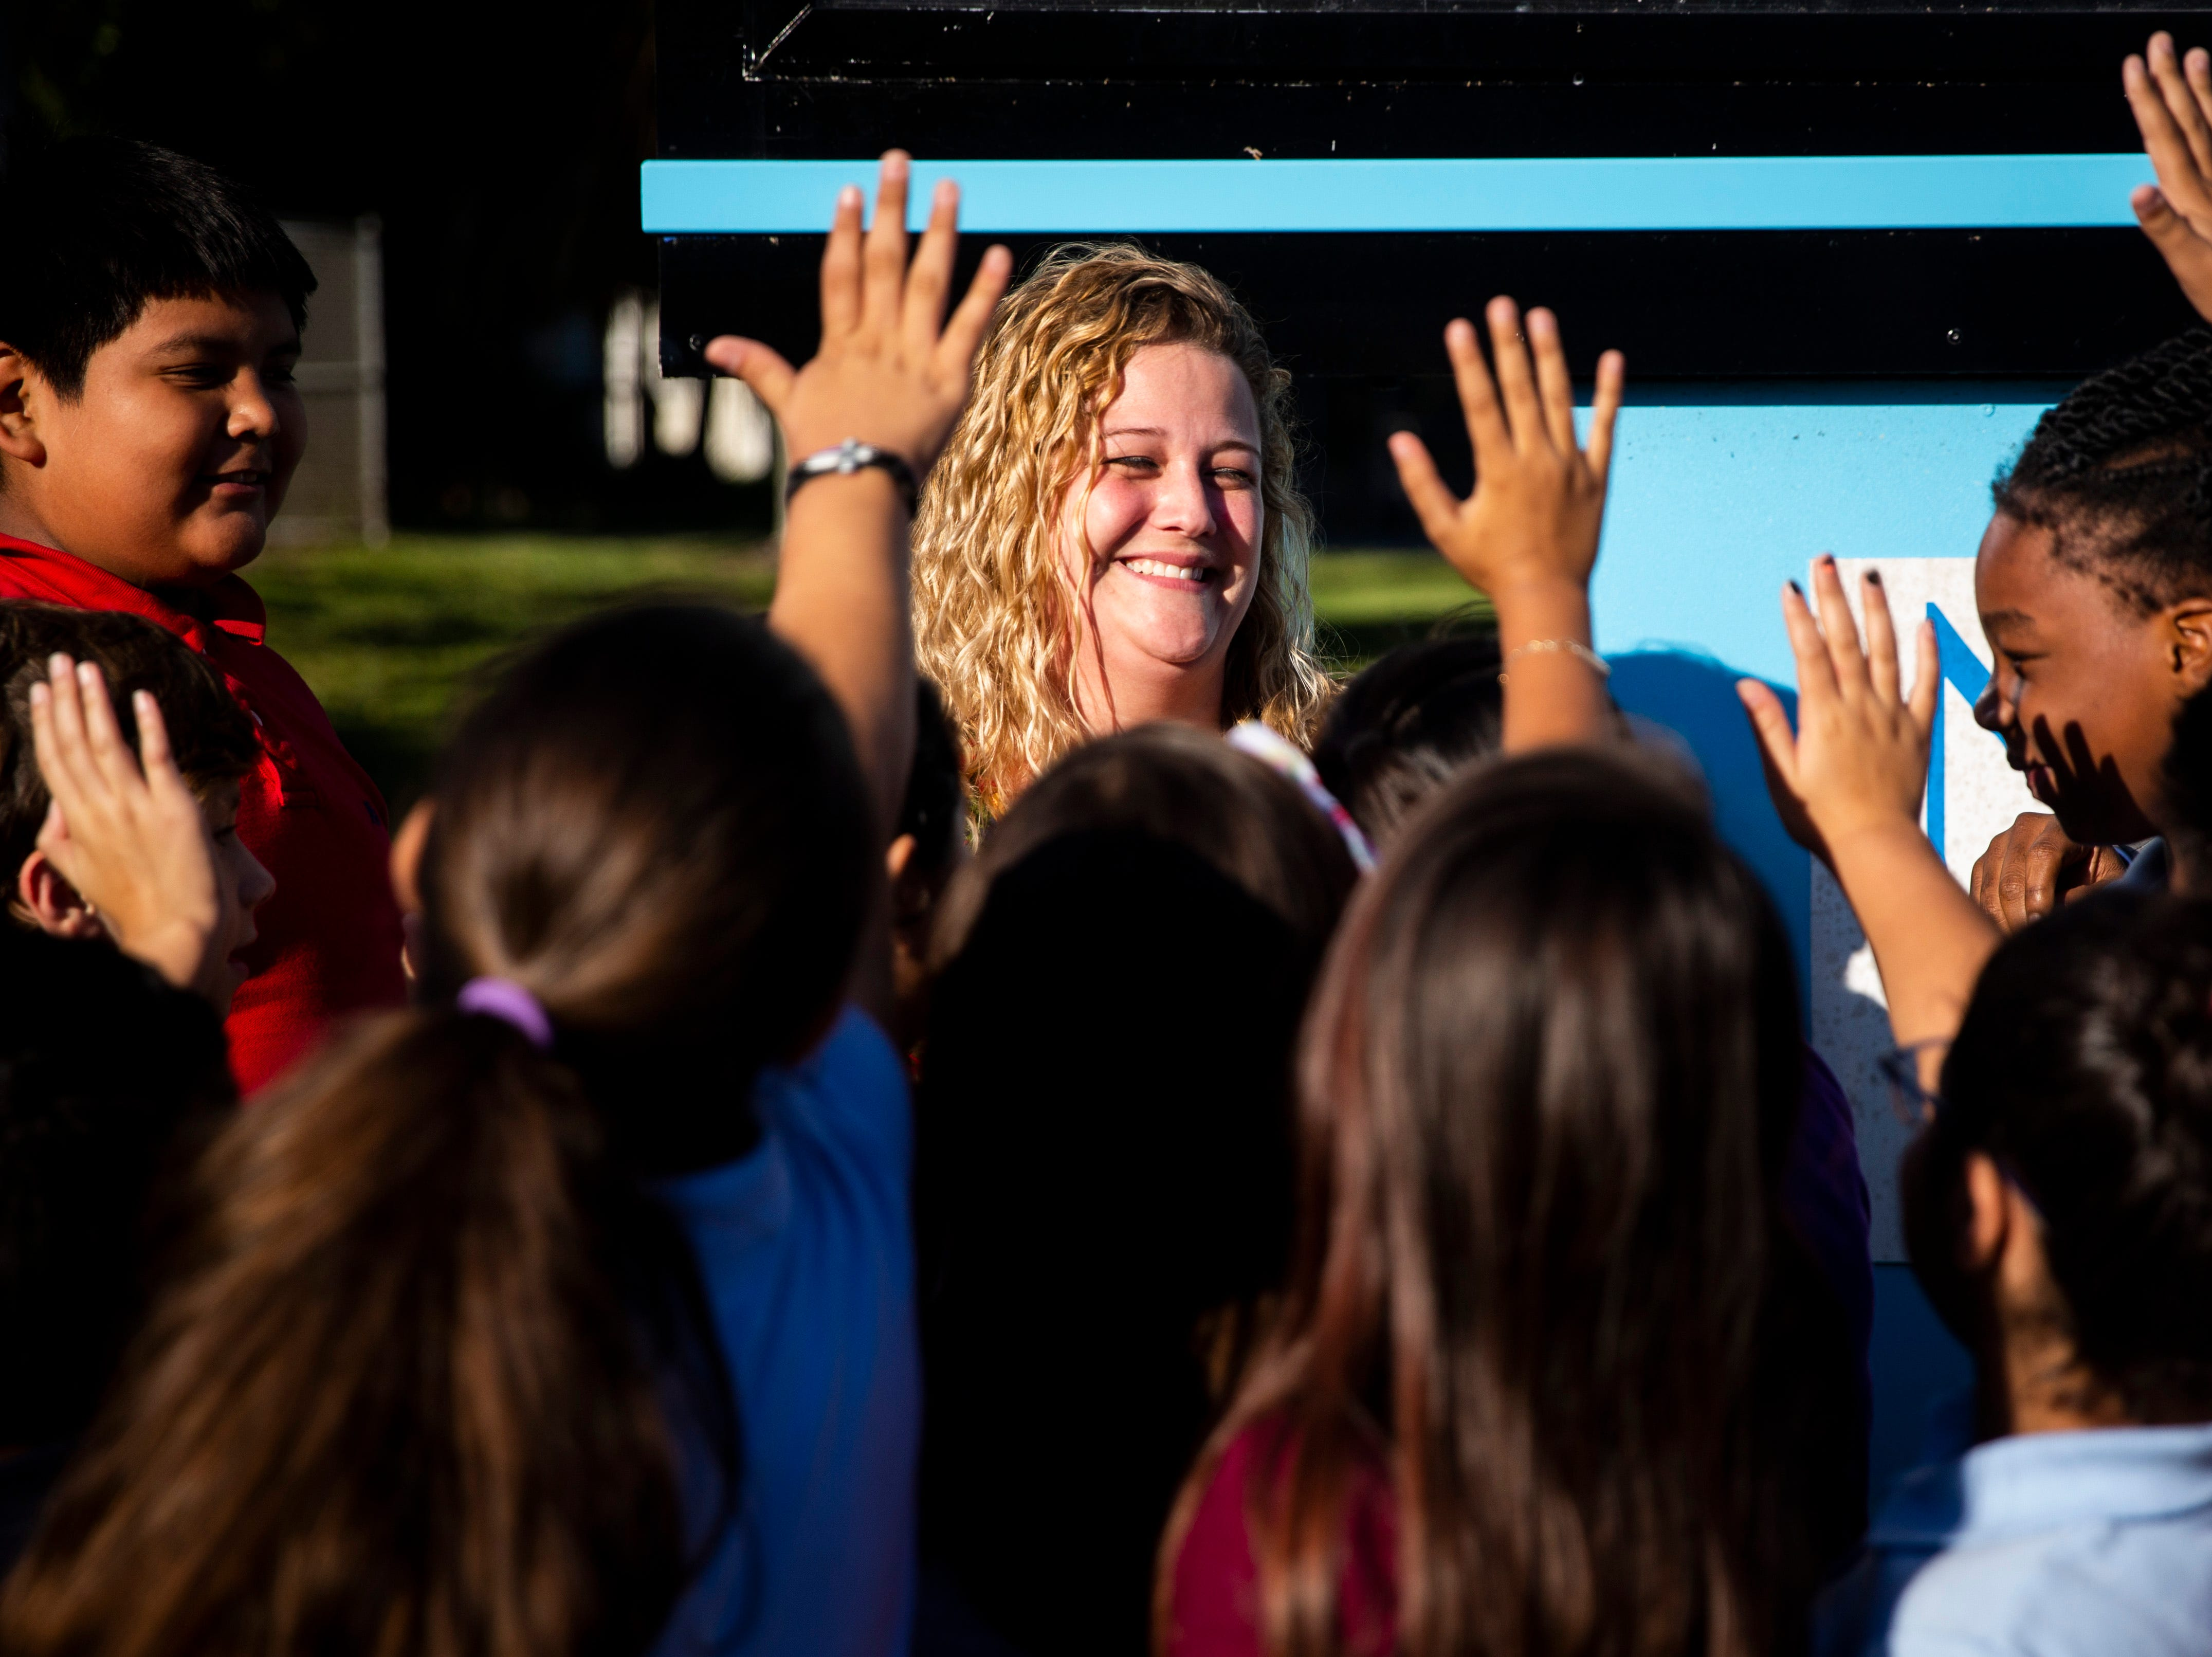 Christine Brady's students crowd around to high-five her after she was presented with a Teachers of Distinction certificate from Champions For Learning on Tuesday, Oct. 30, 2018, at Avalon Elementary School in East Naples.